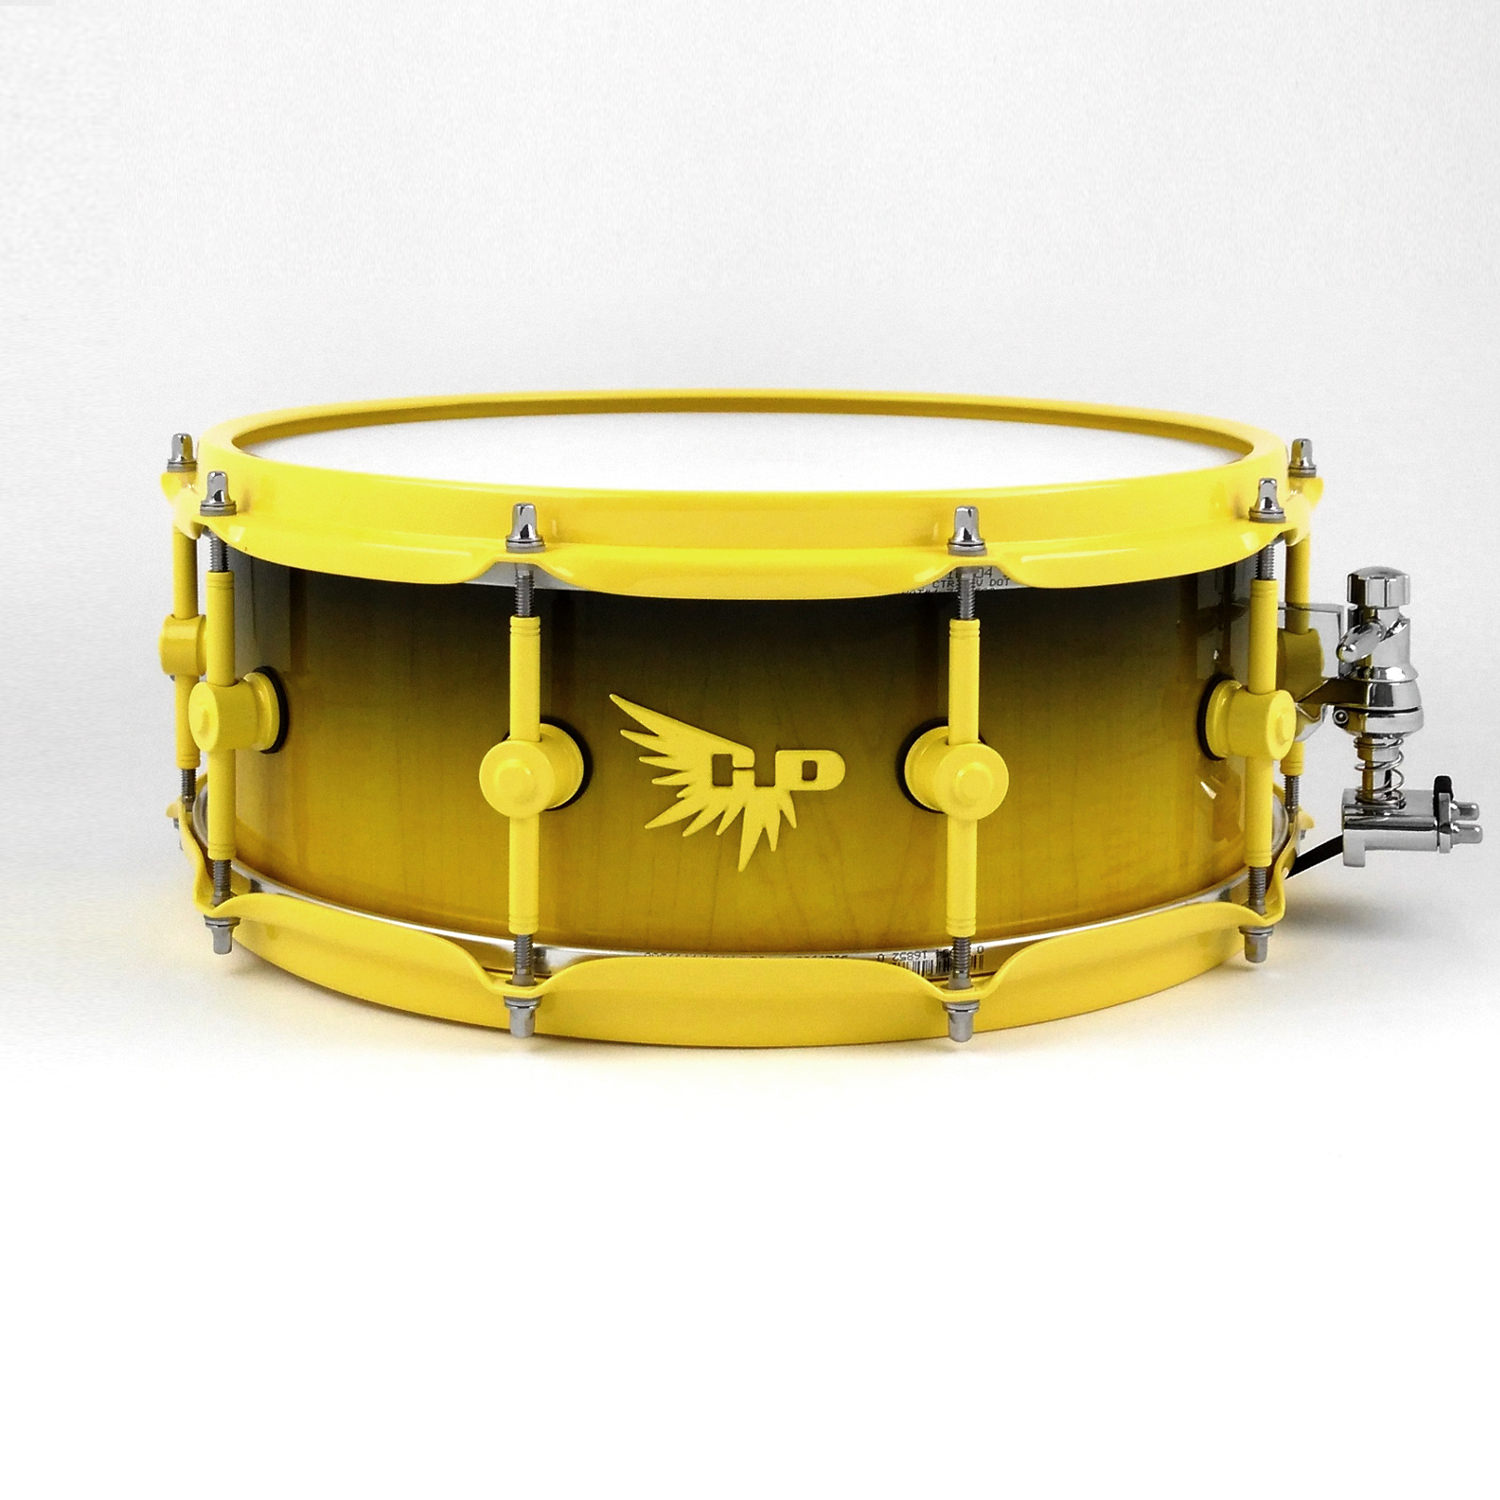 Wes Watkins Snare Drum Hendrix Drum HD Yellow Black Stave